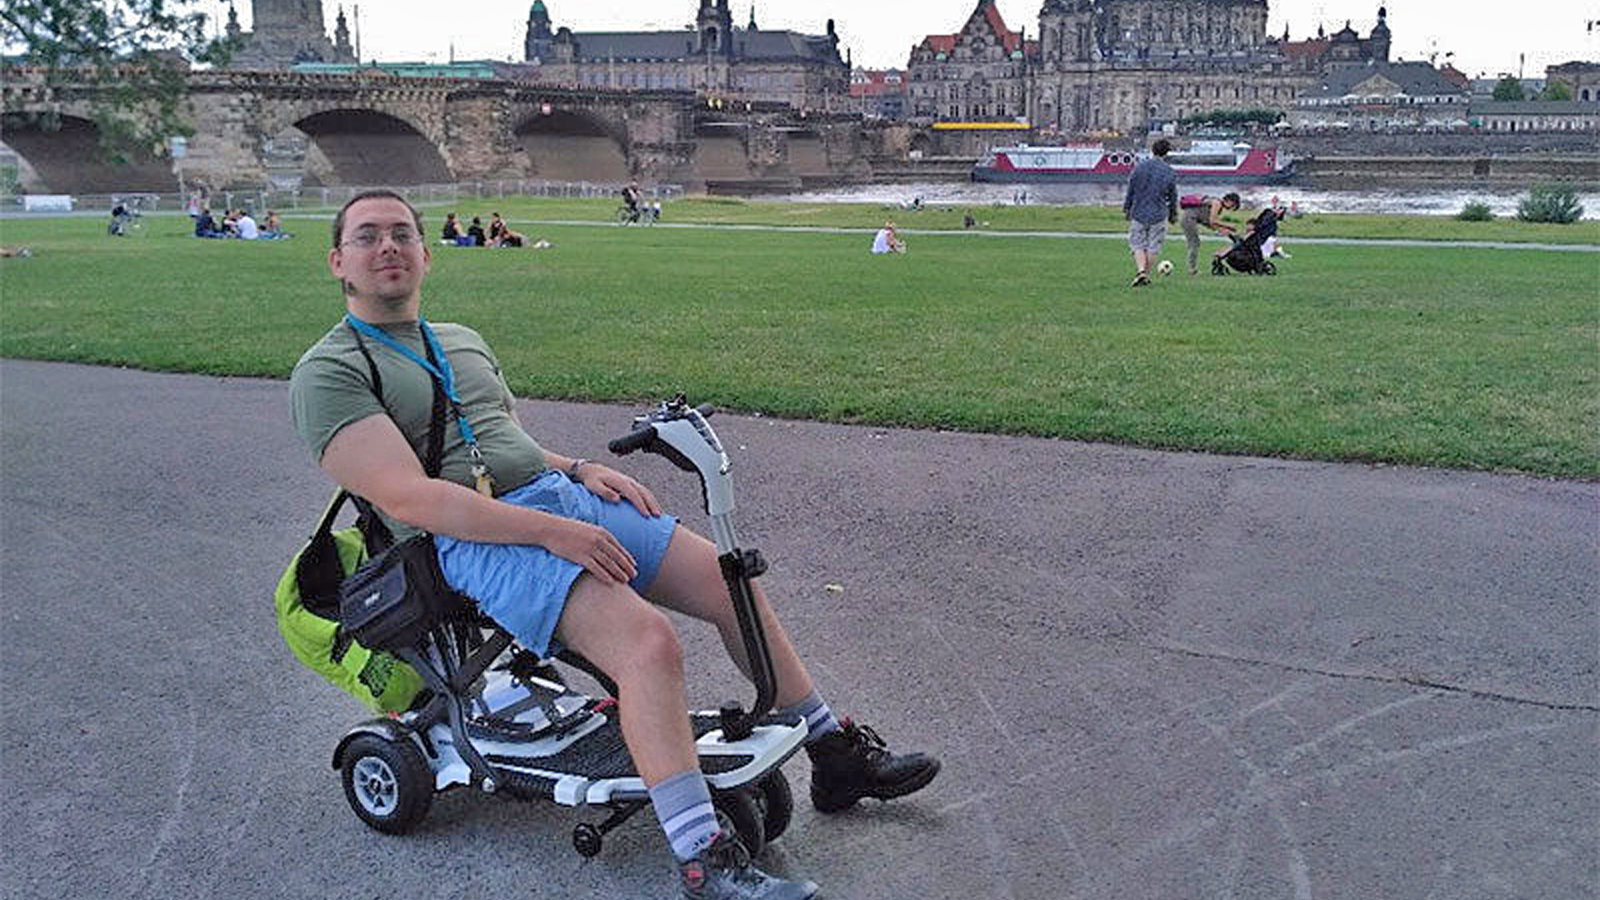 A young man is sitting in a electric scooter